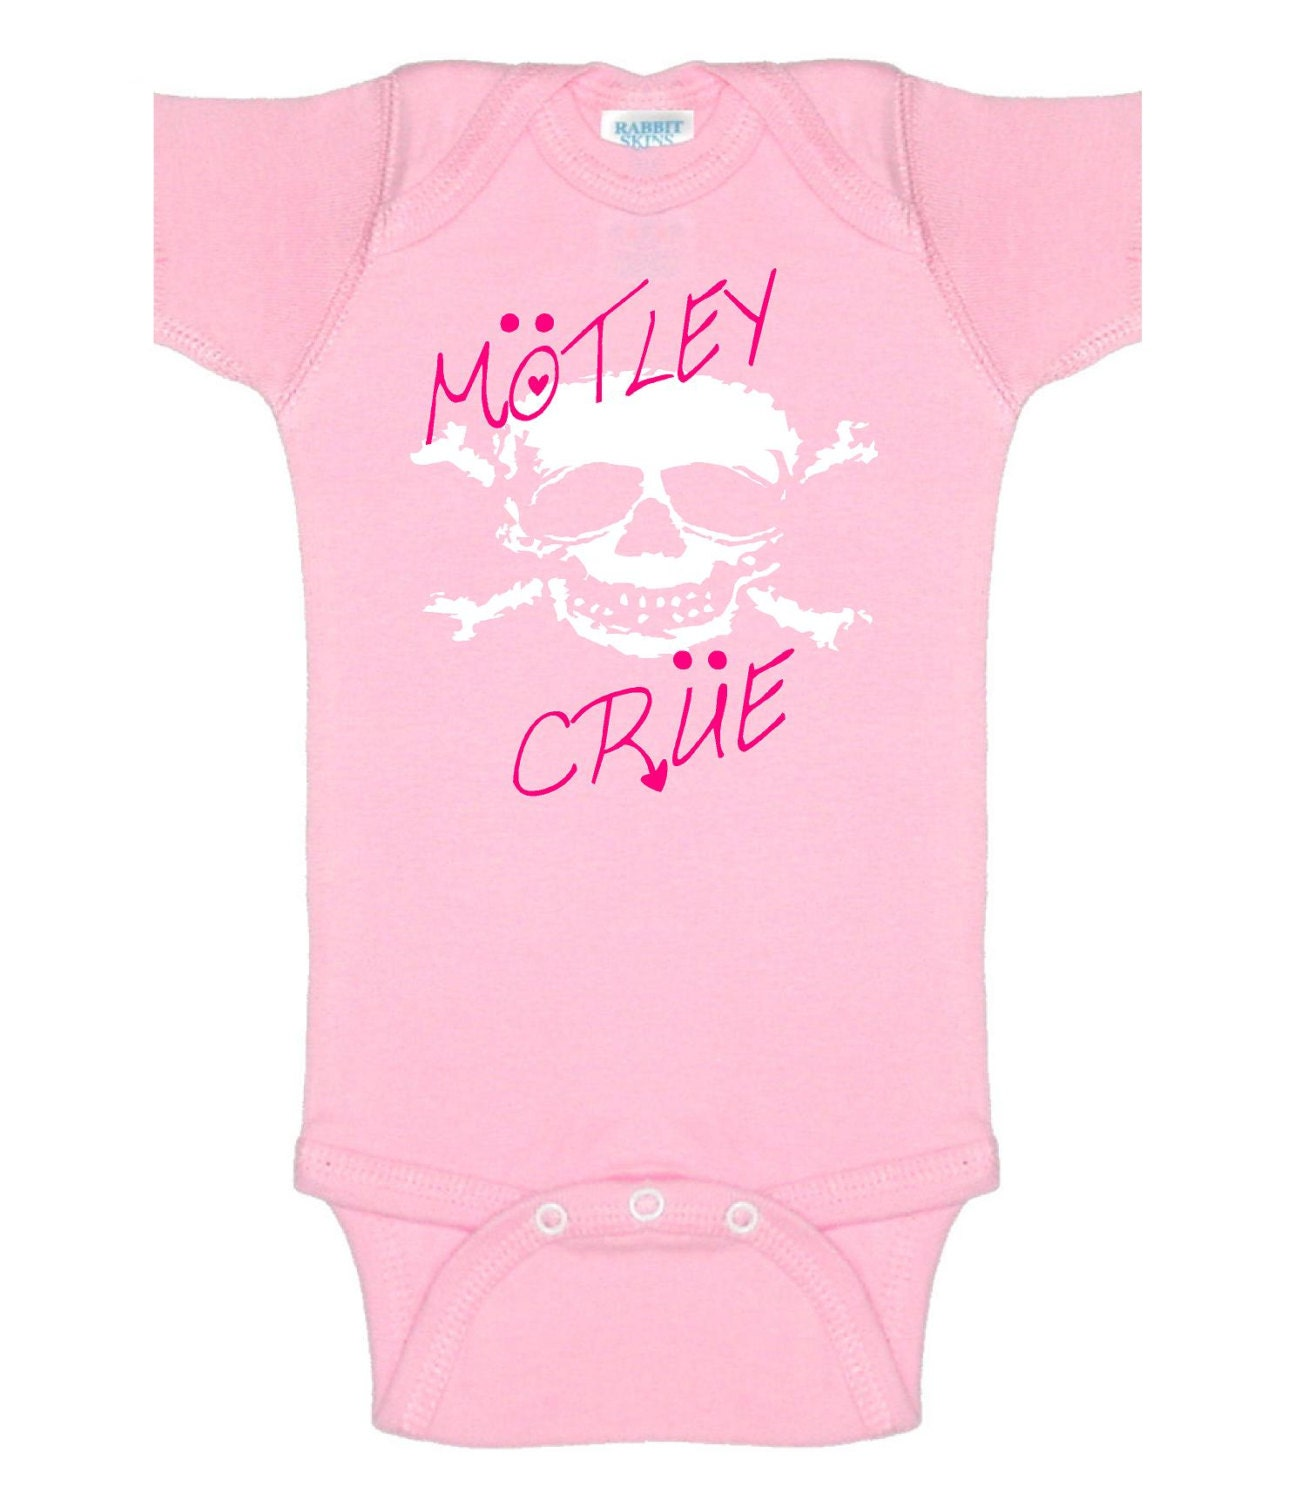 pwp motley crue skull baby onesie romper infant t shirt outfit